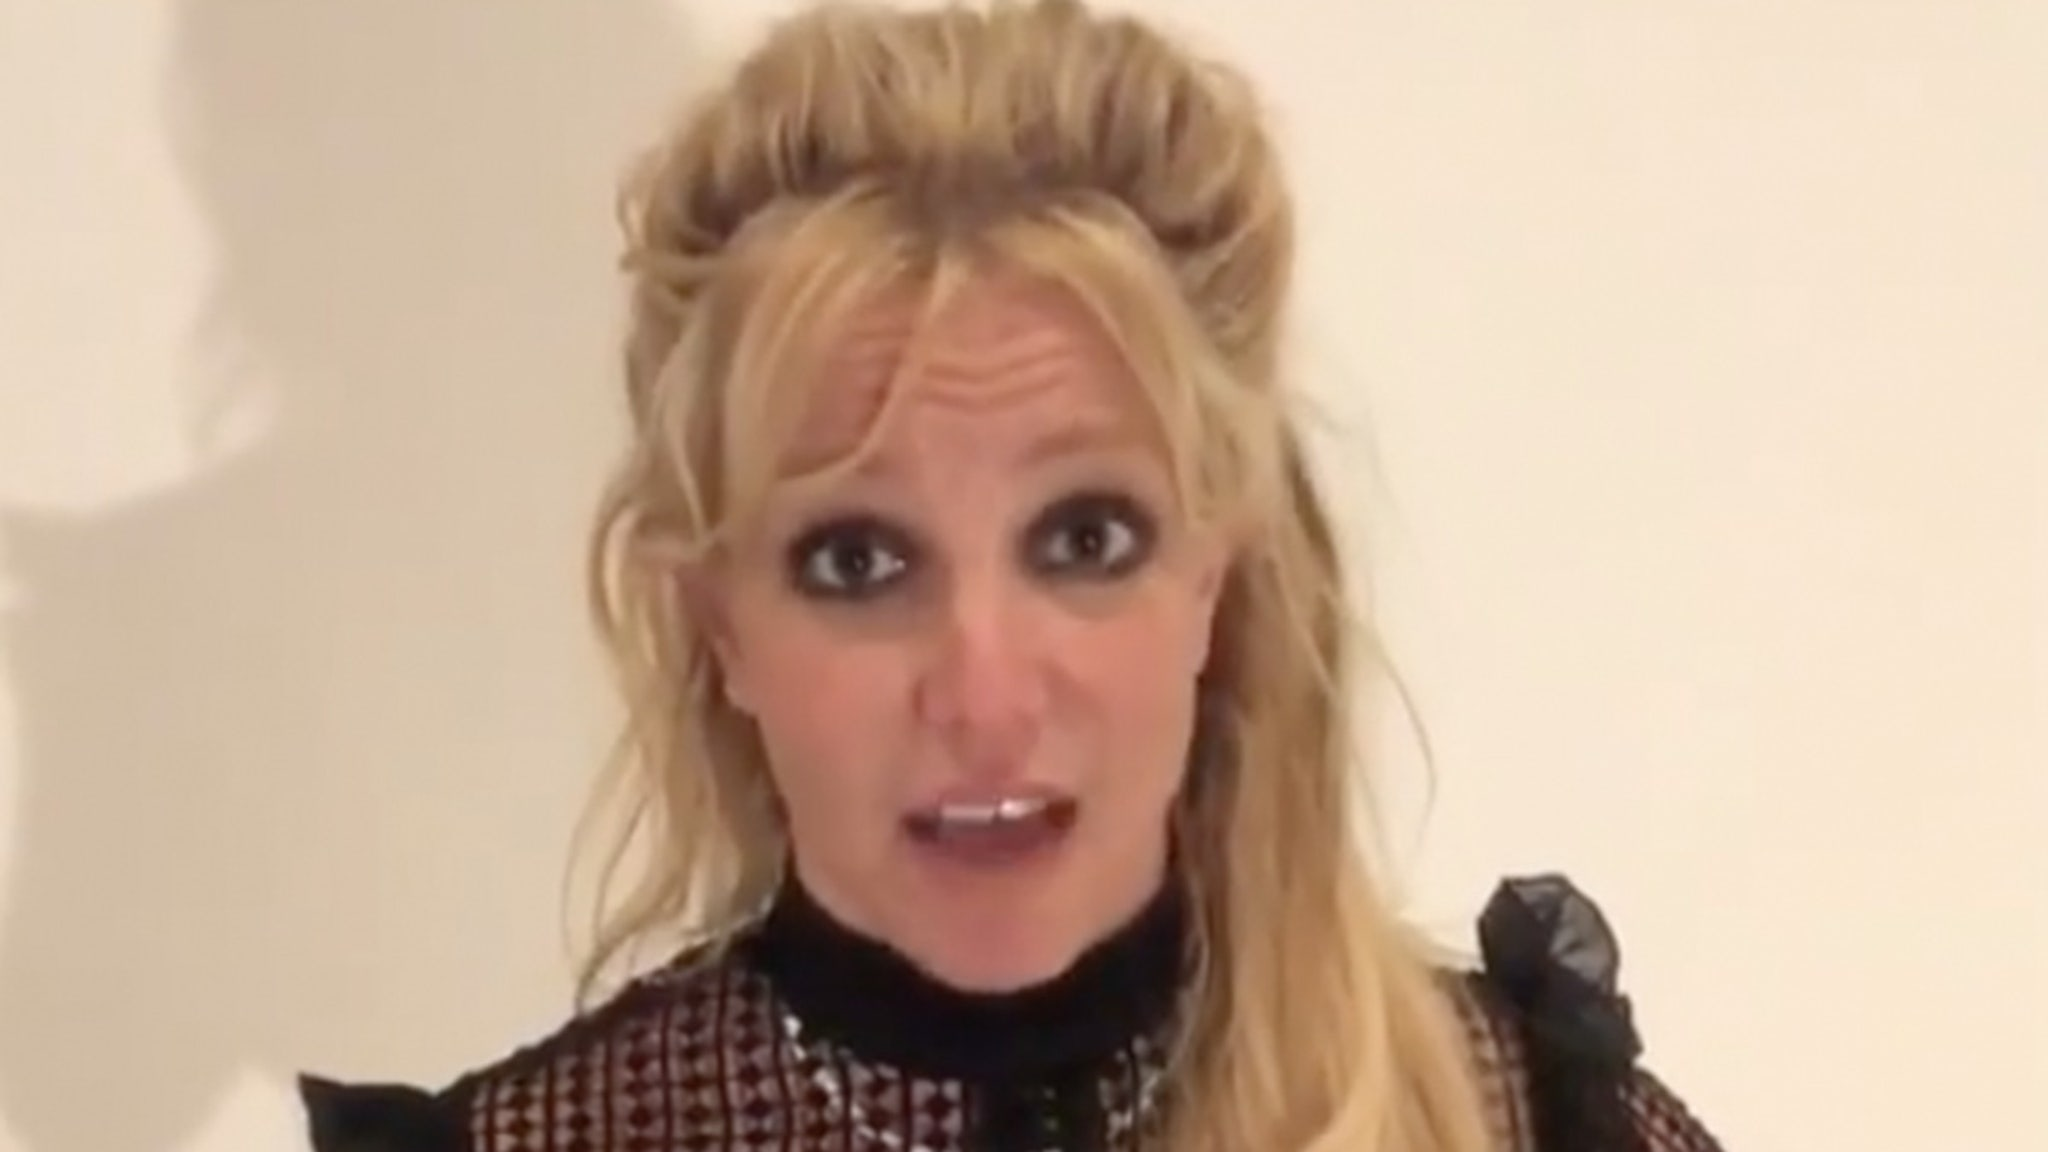 Britney Spears Conservatorship Hearing Torpedoed By Public ... Conservatorship Firmly in Place